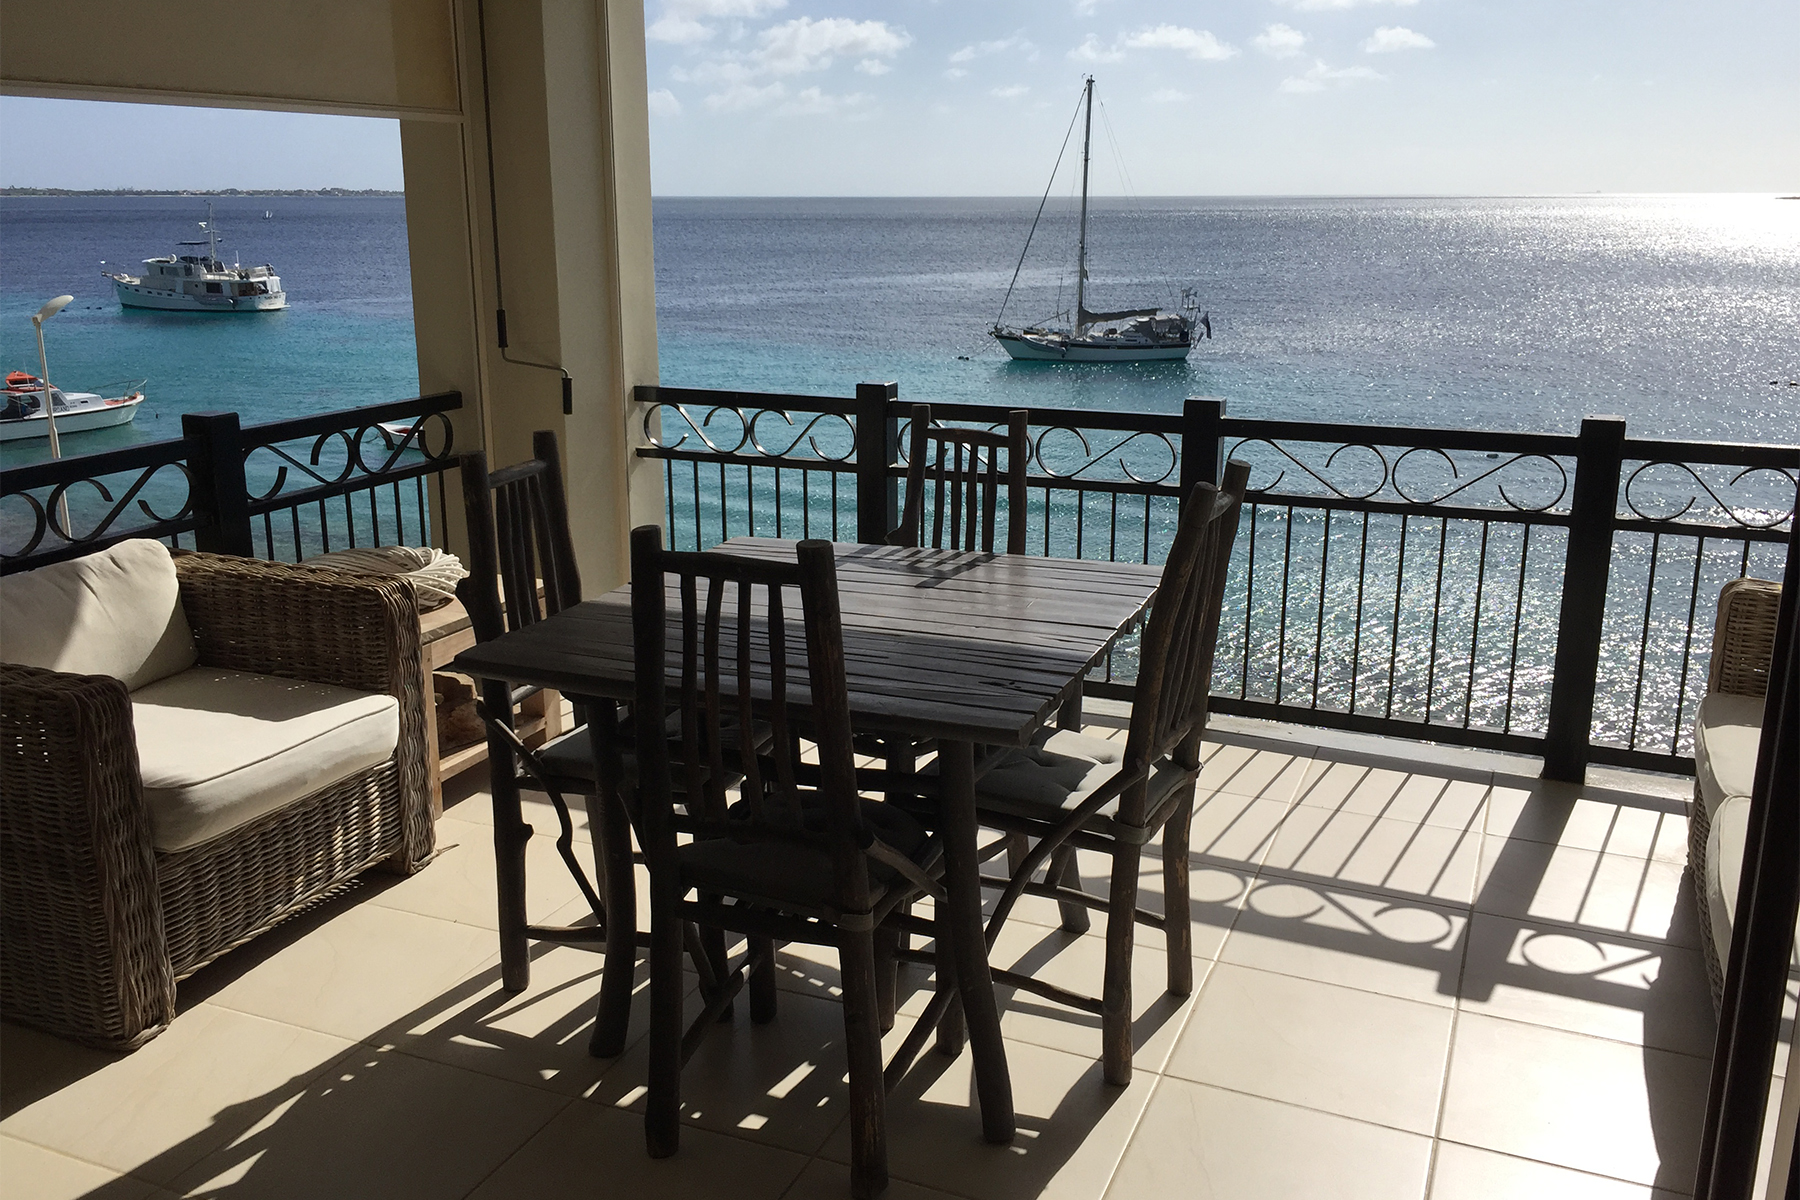 Apartment for Sale at Elegancia del Caribe unit 15 Kralendijk, Bonaire